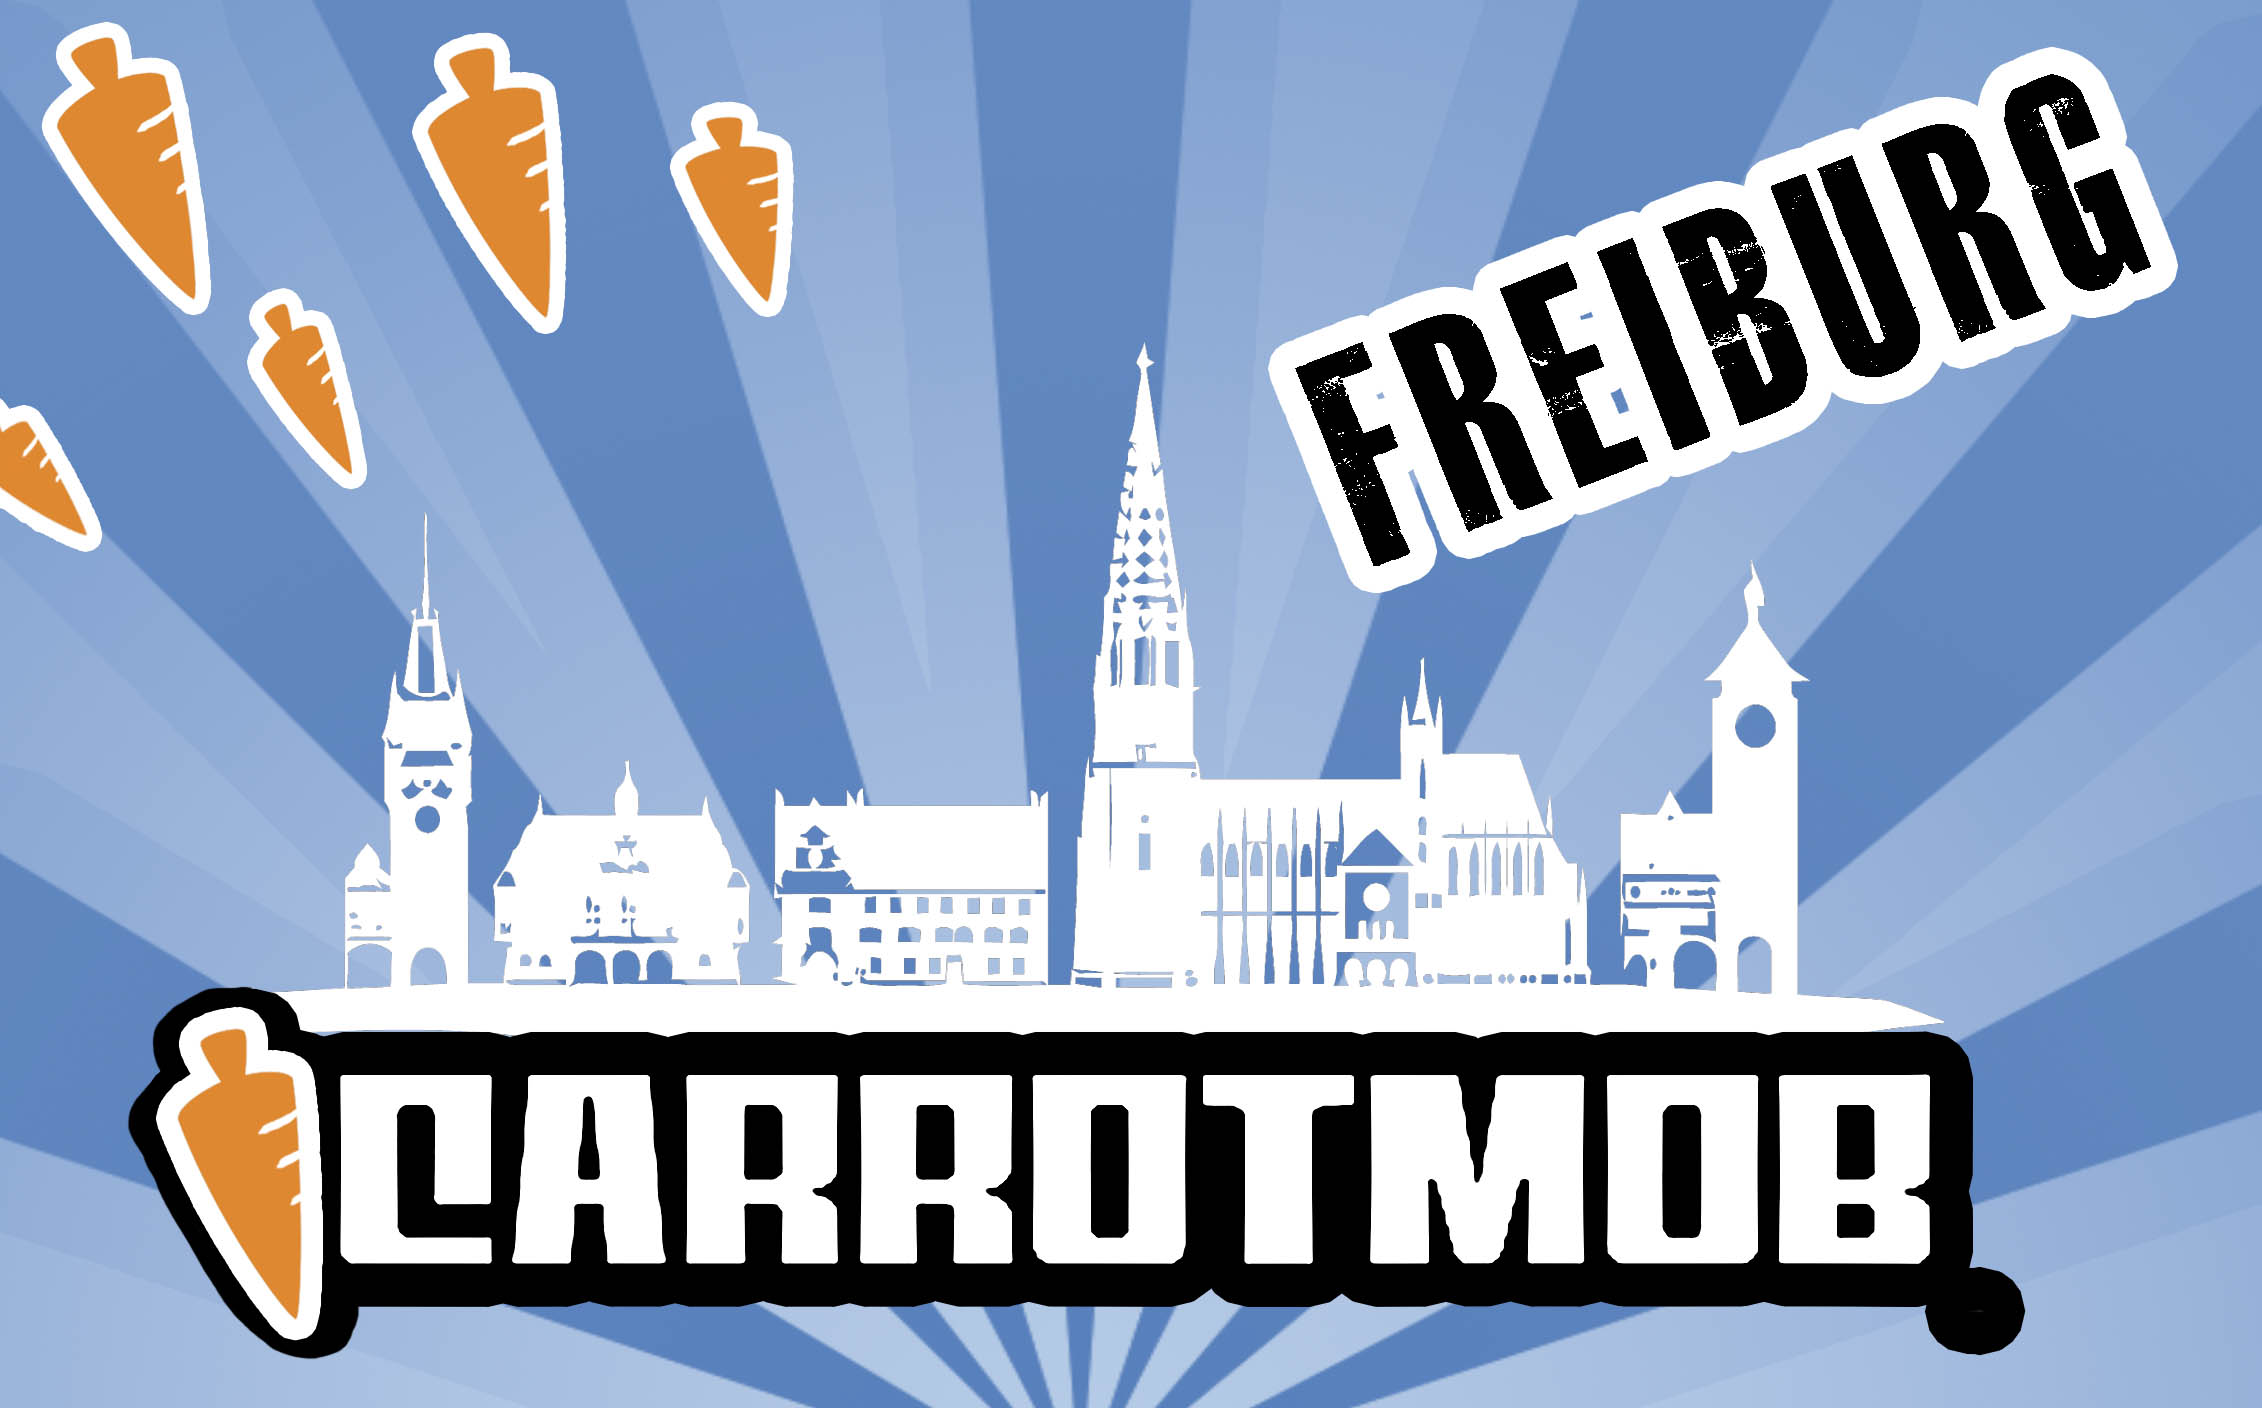 Carrotmob-freiburg2 in